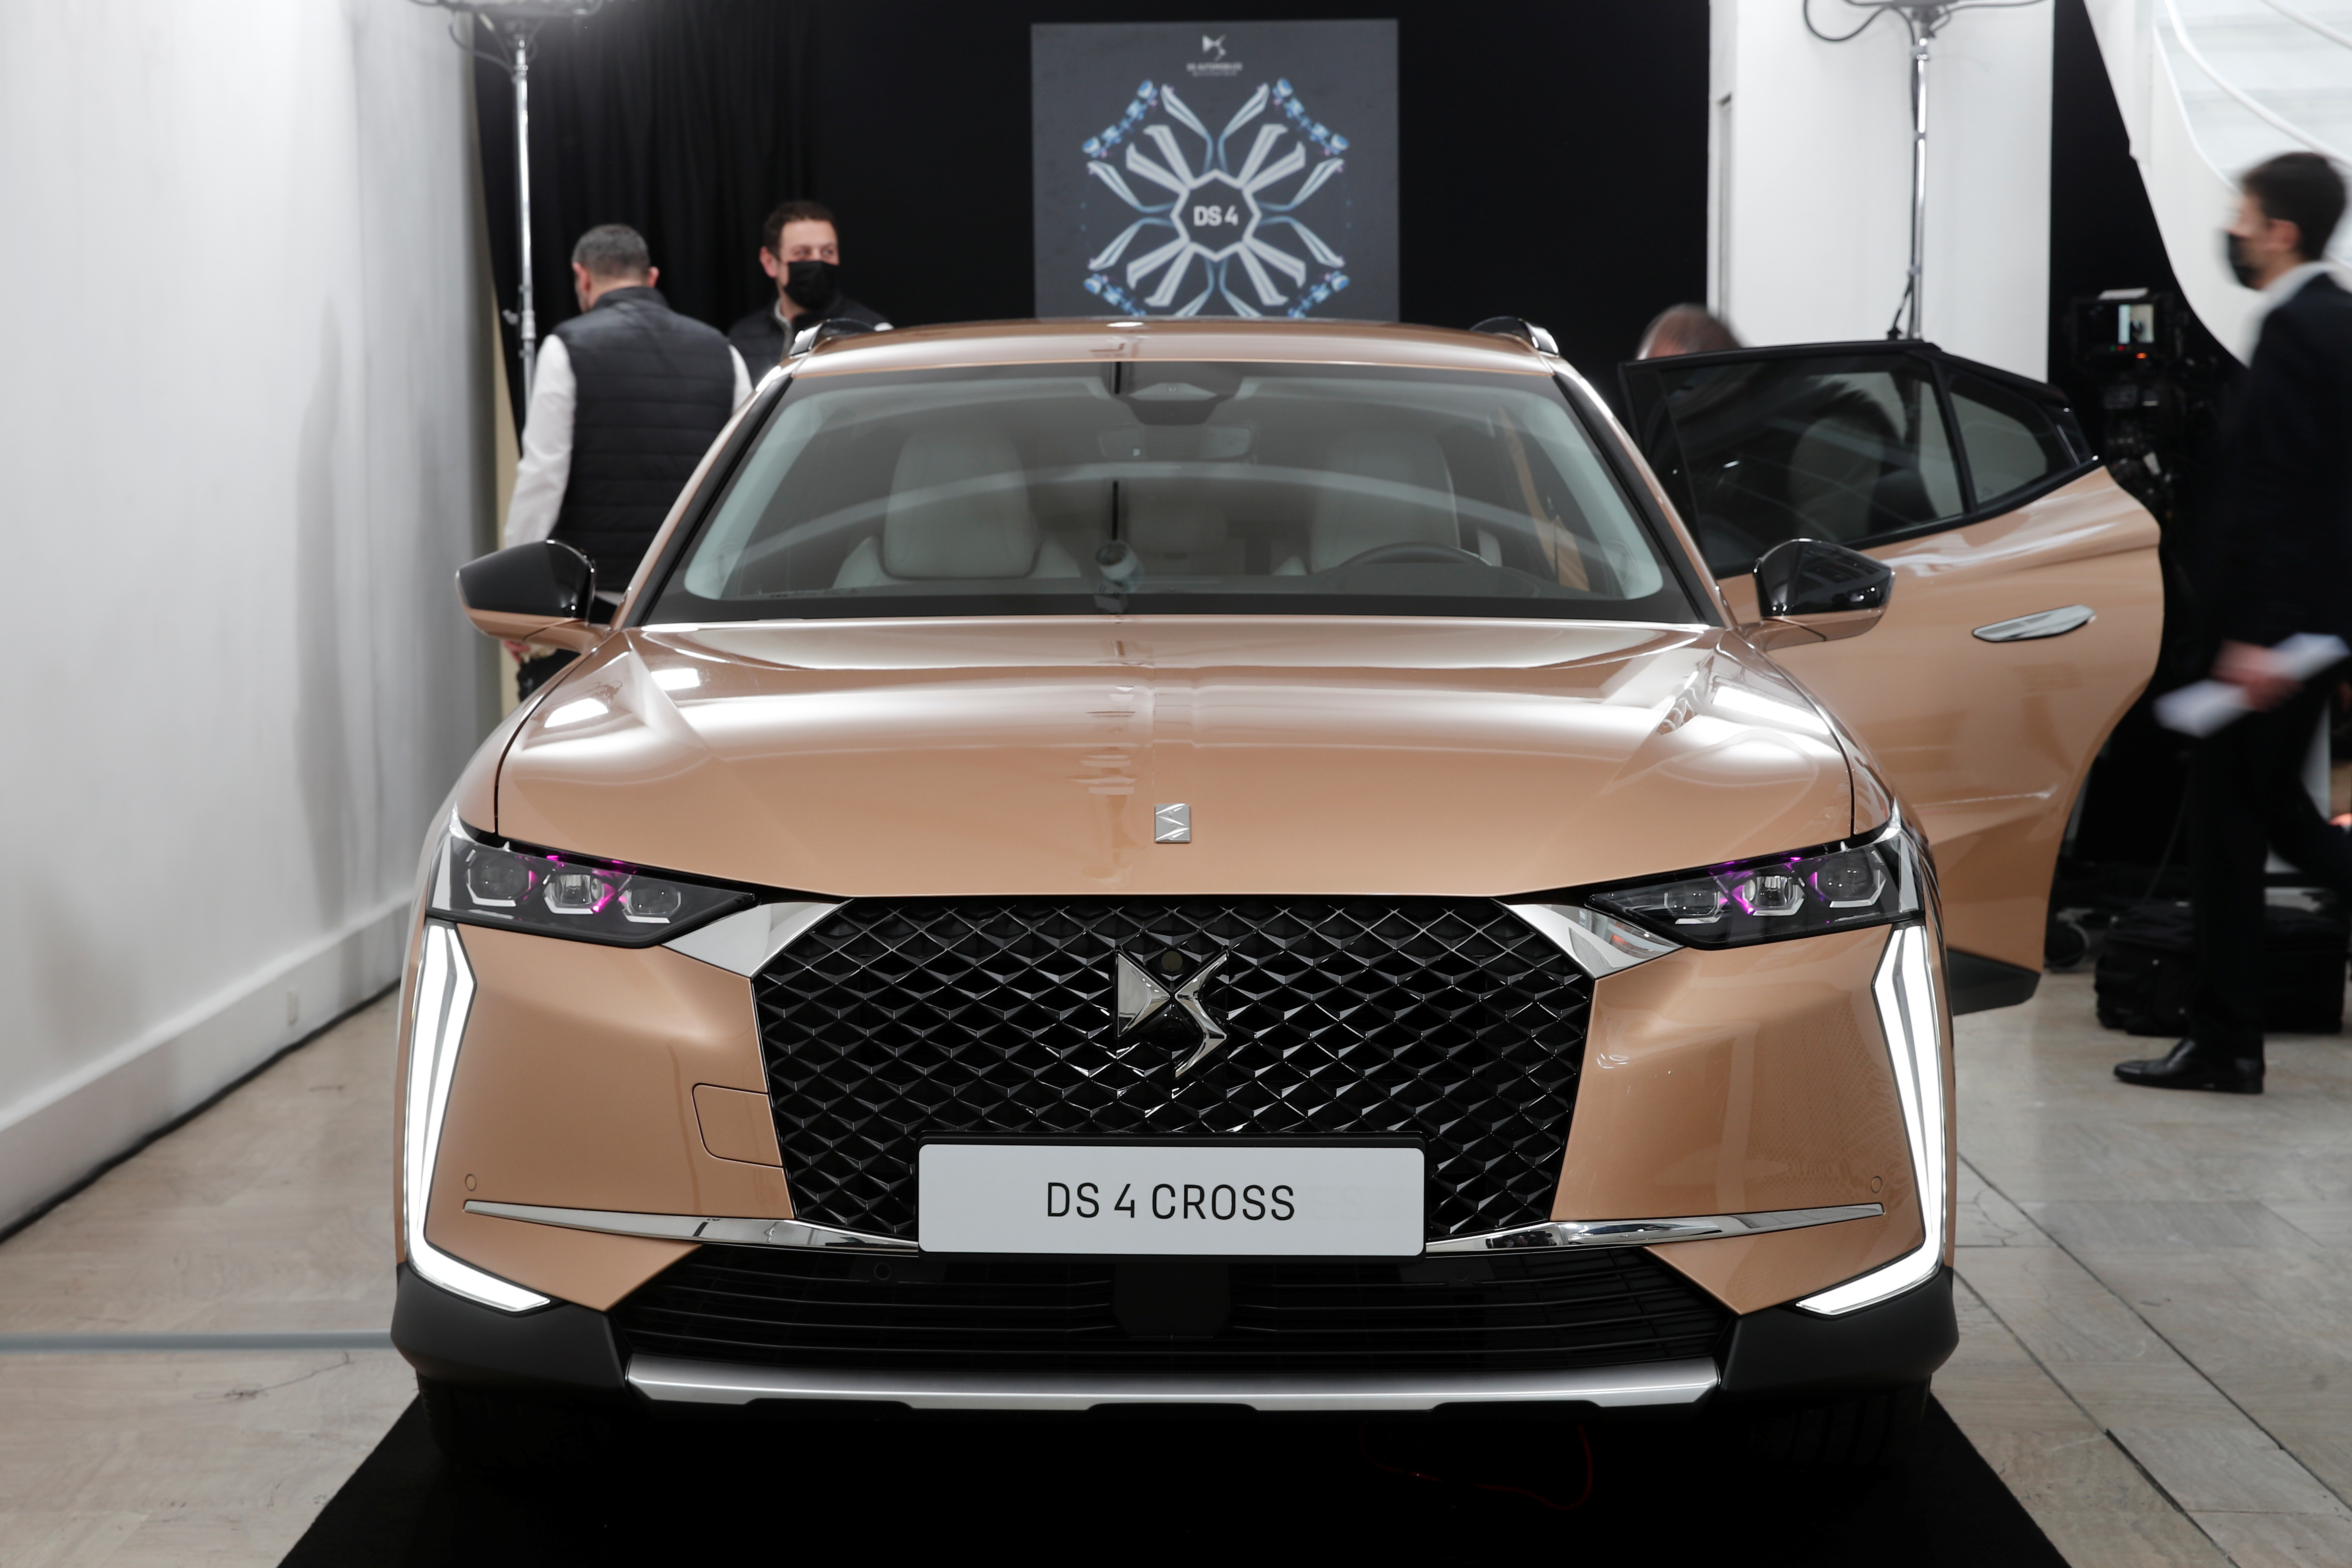 A DS 4 automobile, produced by Stellantis, stands on display during its launch event in Paris, France, February 3, 2021.